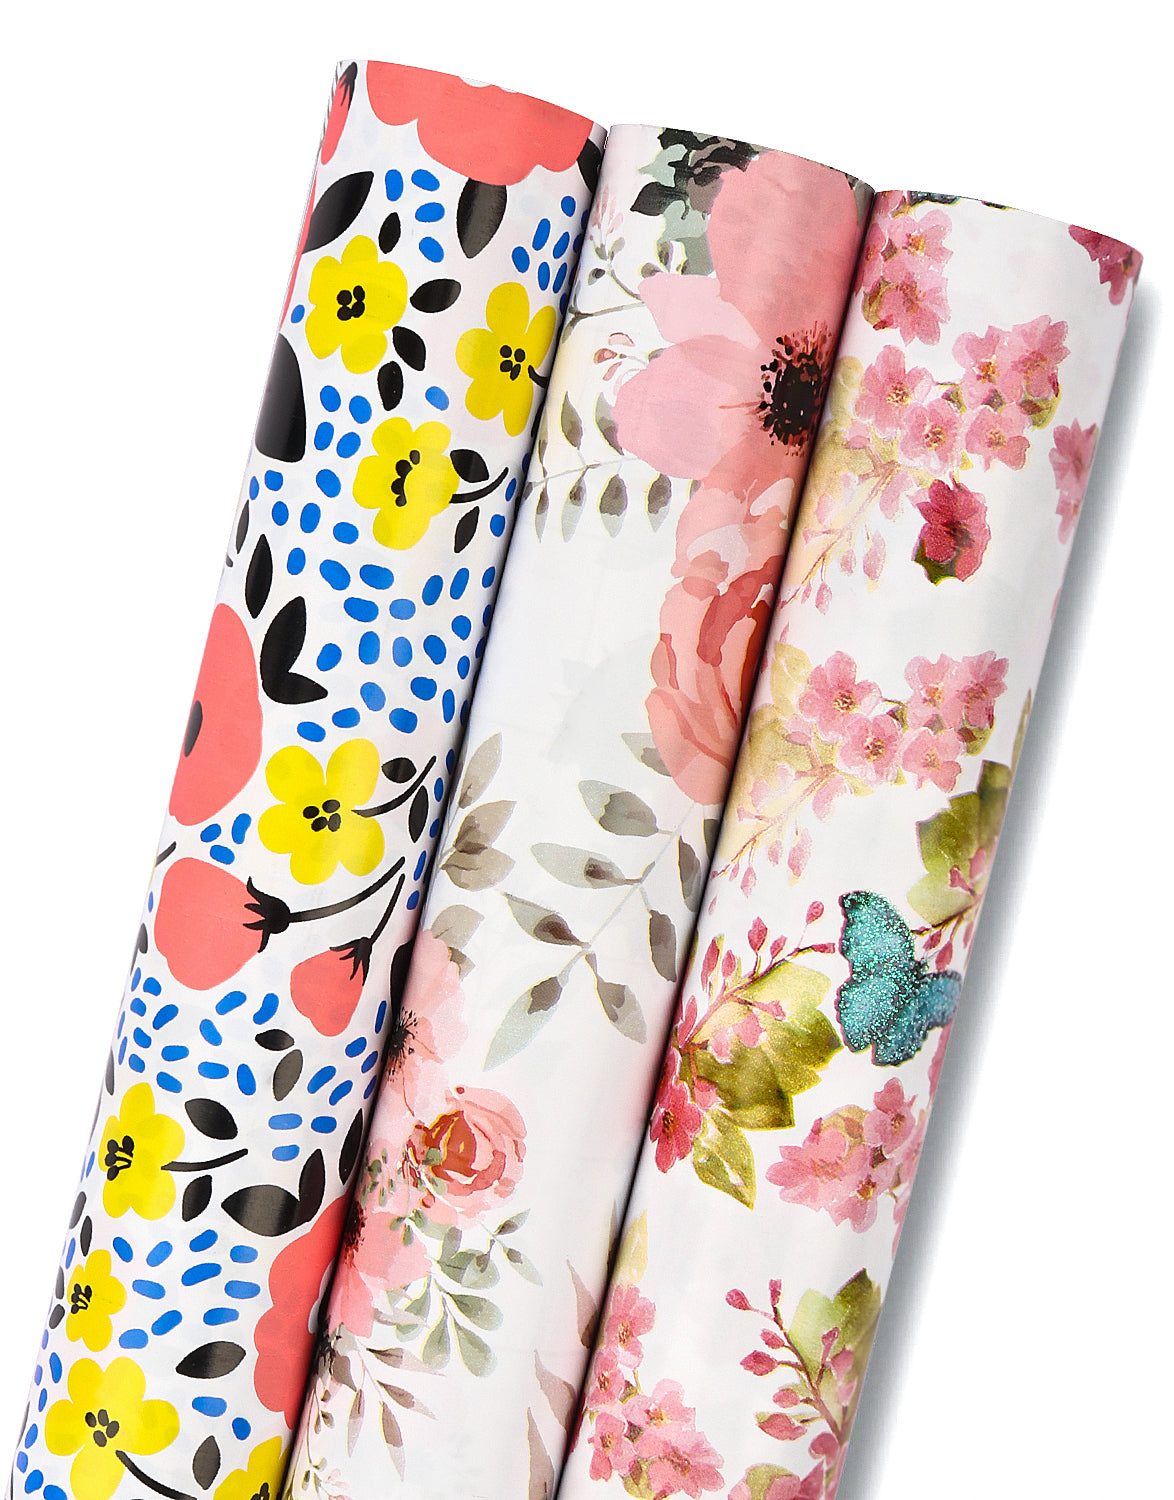 Wrapaholic-3 Different-Floral- and-Butterfly-Design-Wrapping-Paper -Roll-(14.4 sq. ft.TTL.)-1